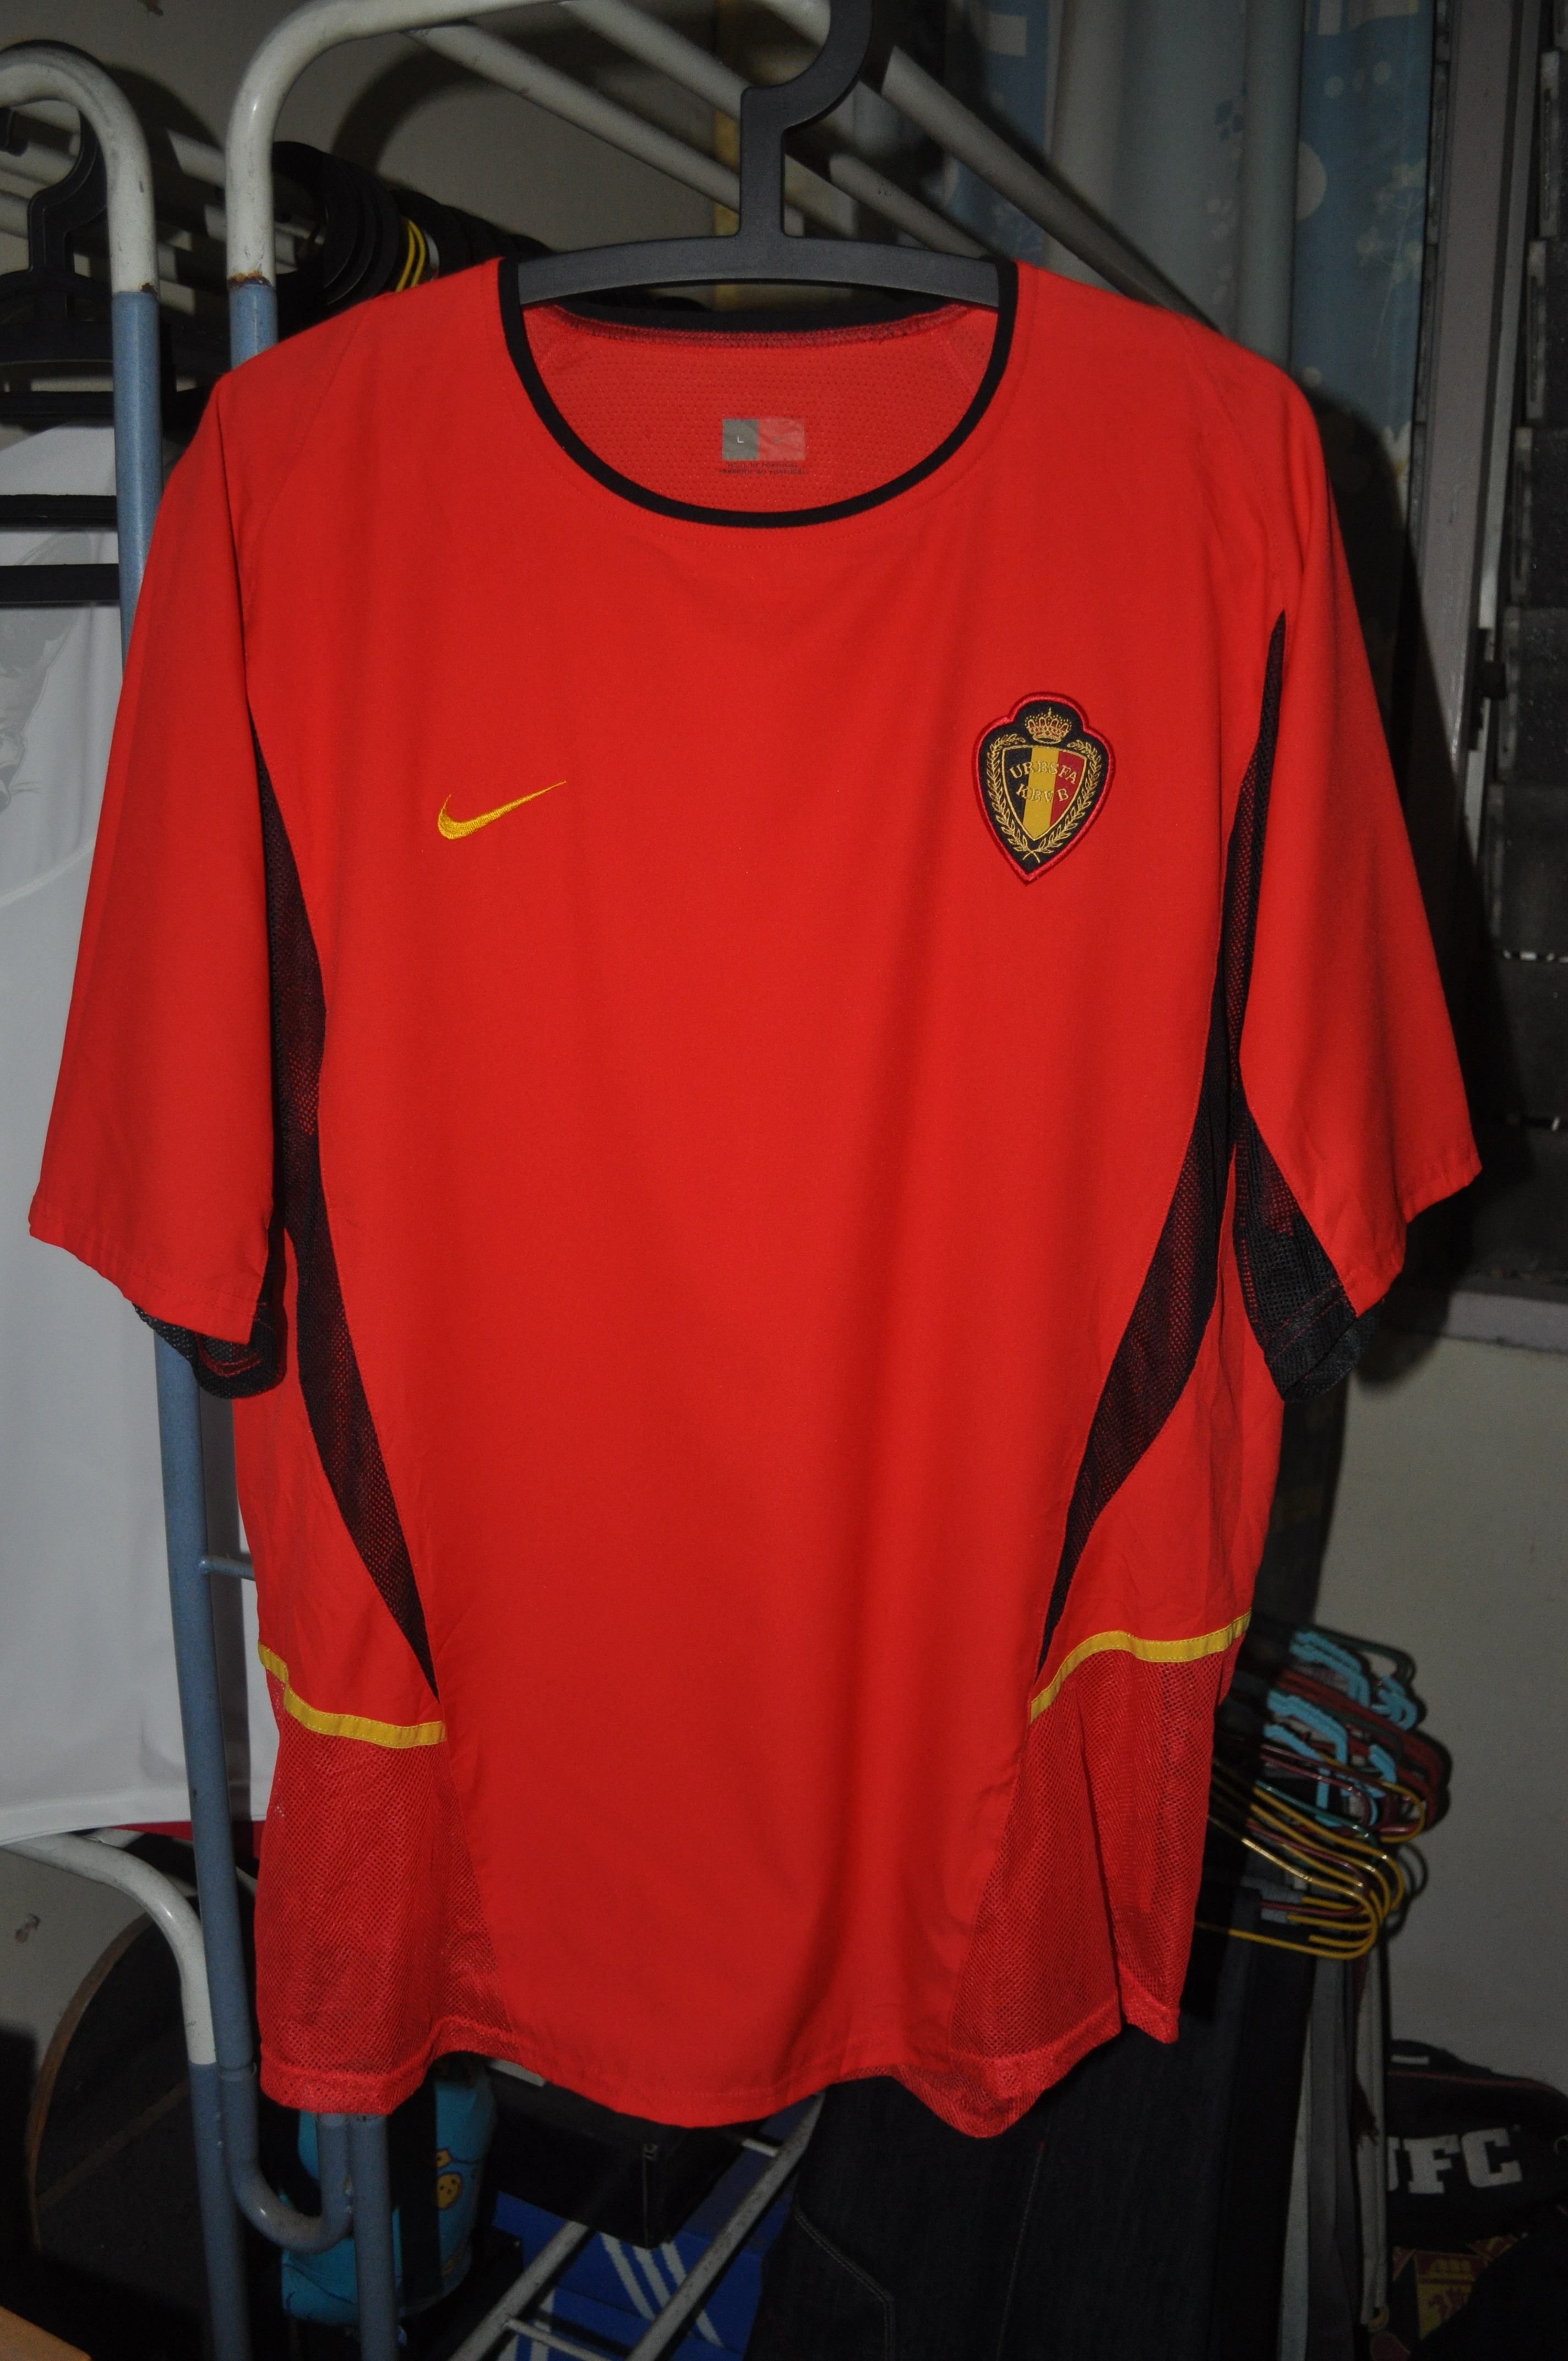 e8ffb16ce4 Worn during 2002 World Cup Korea Japan campaign. It is the player s issue  jersey.